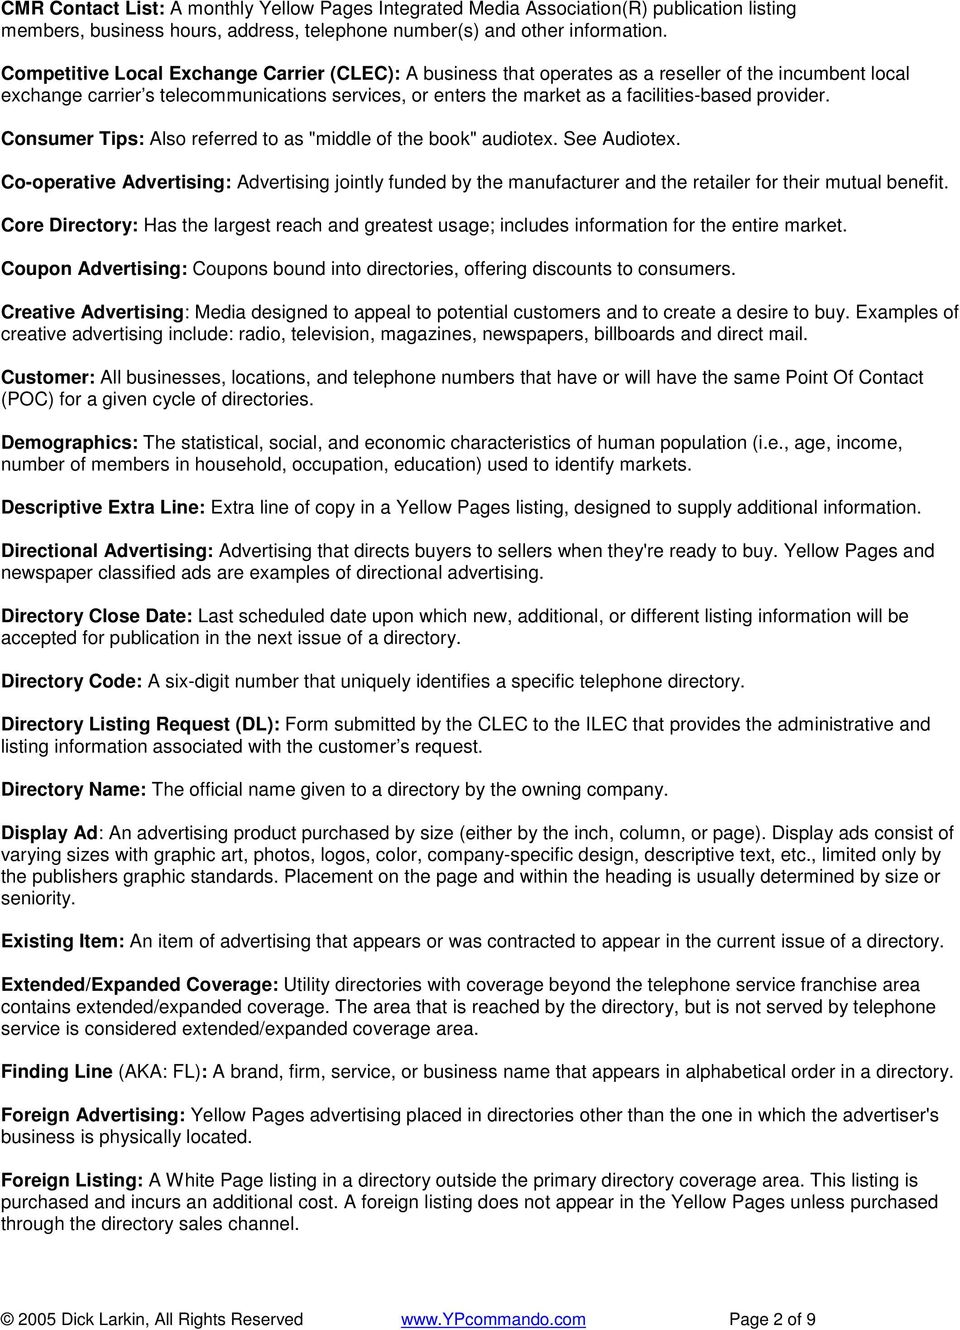 GLOSSARY OF YELLOW PAGES TERMS - PDF